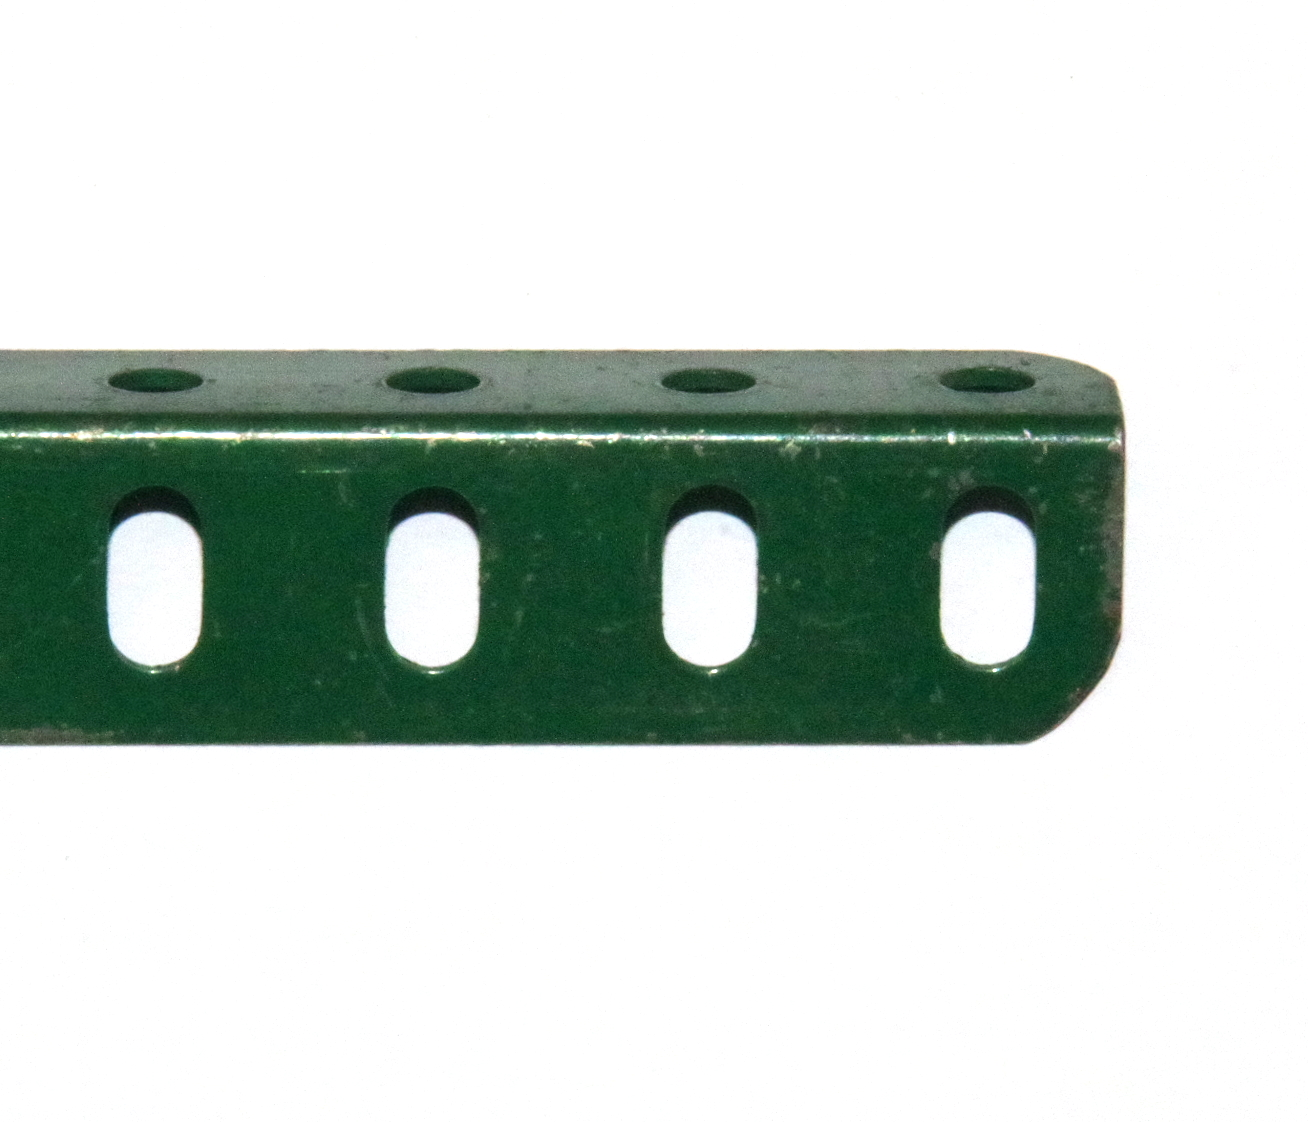 8 Angle Girder 25 Hole Dark Green Original